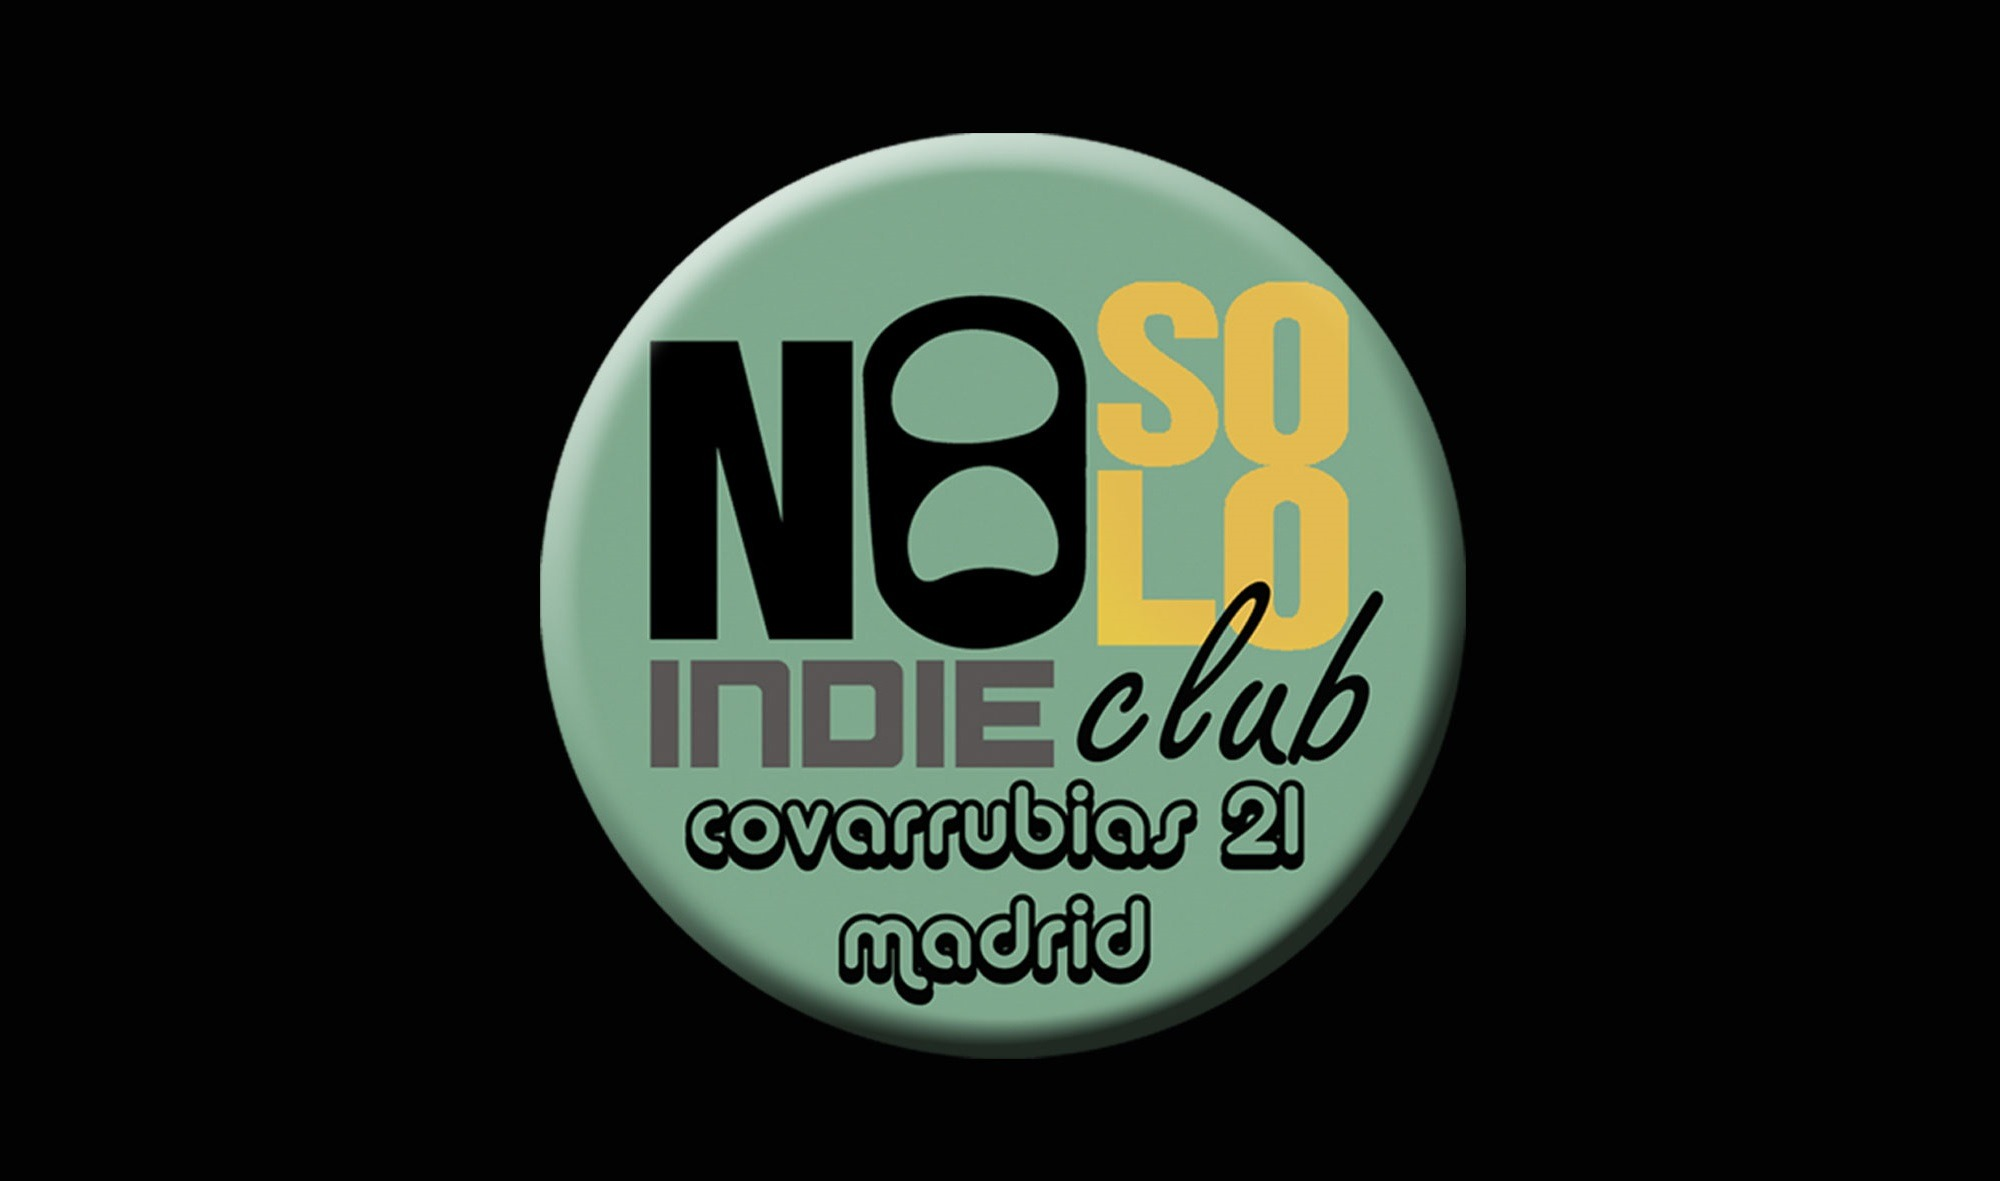 logo-NosoloIndie-Club-copia1